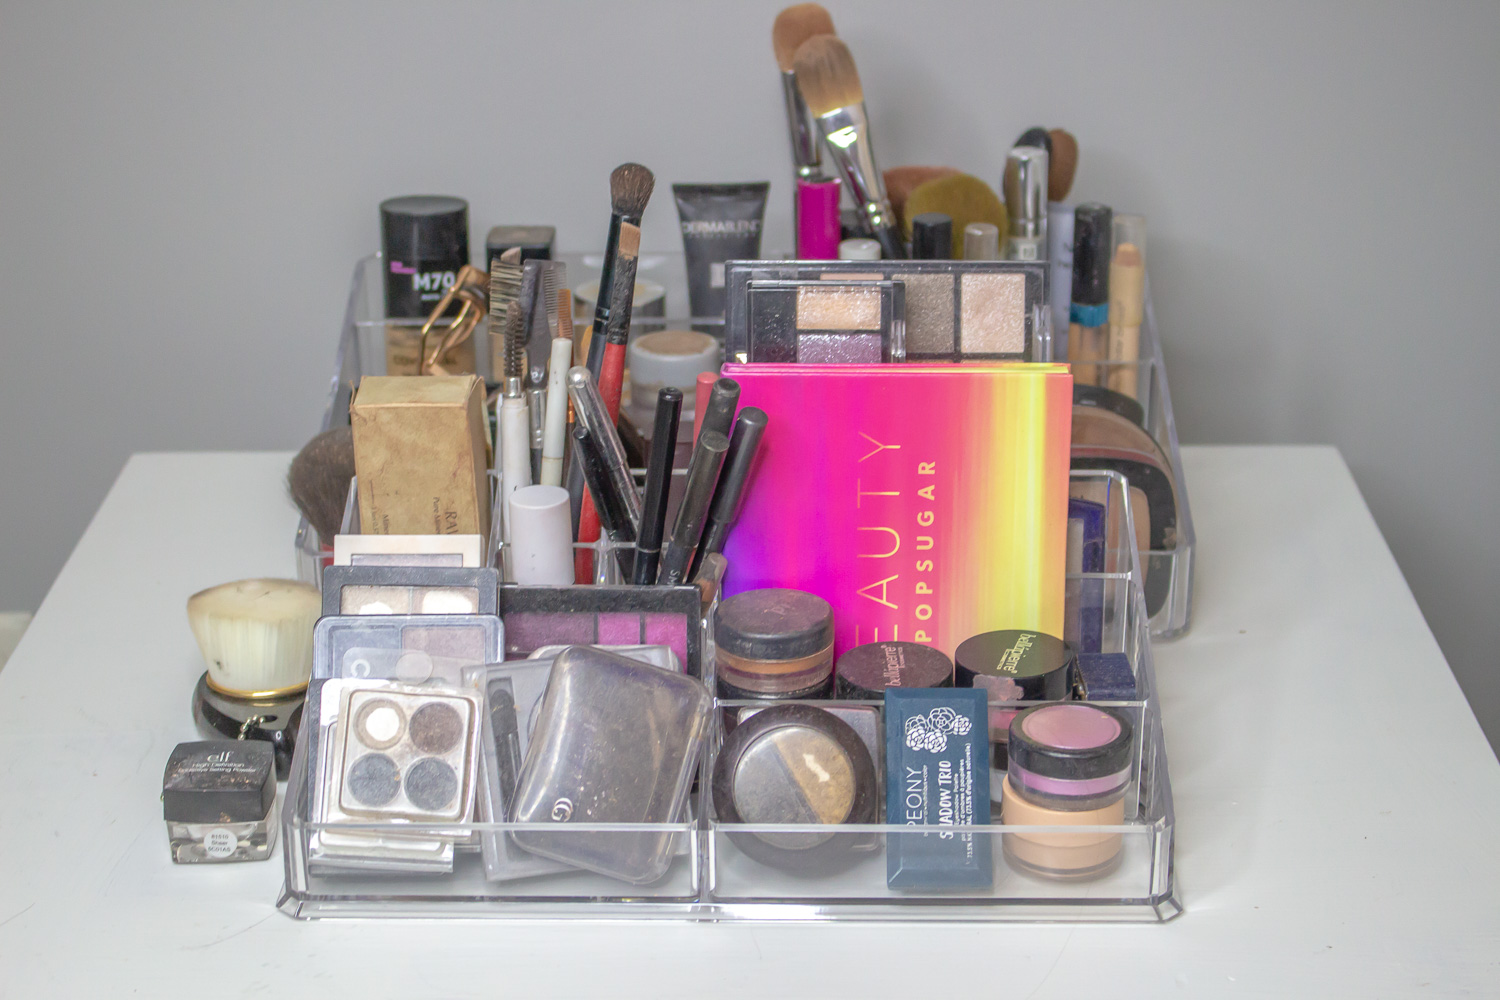 After: I used acrylic trays to help organize my makeup.